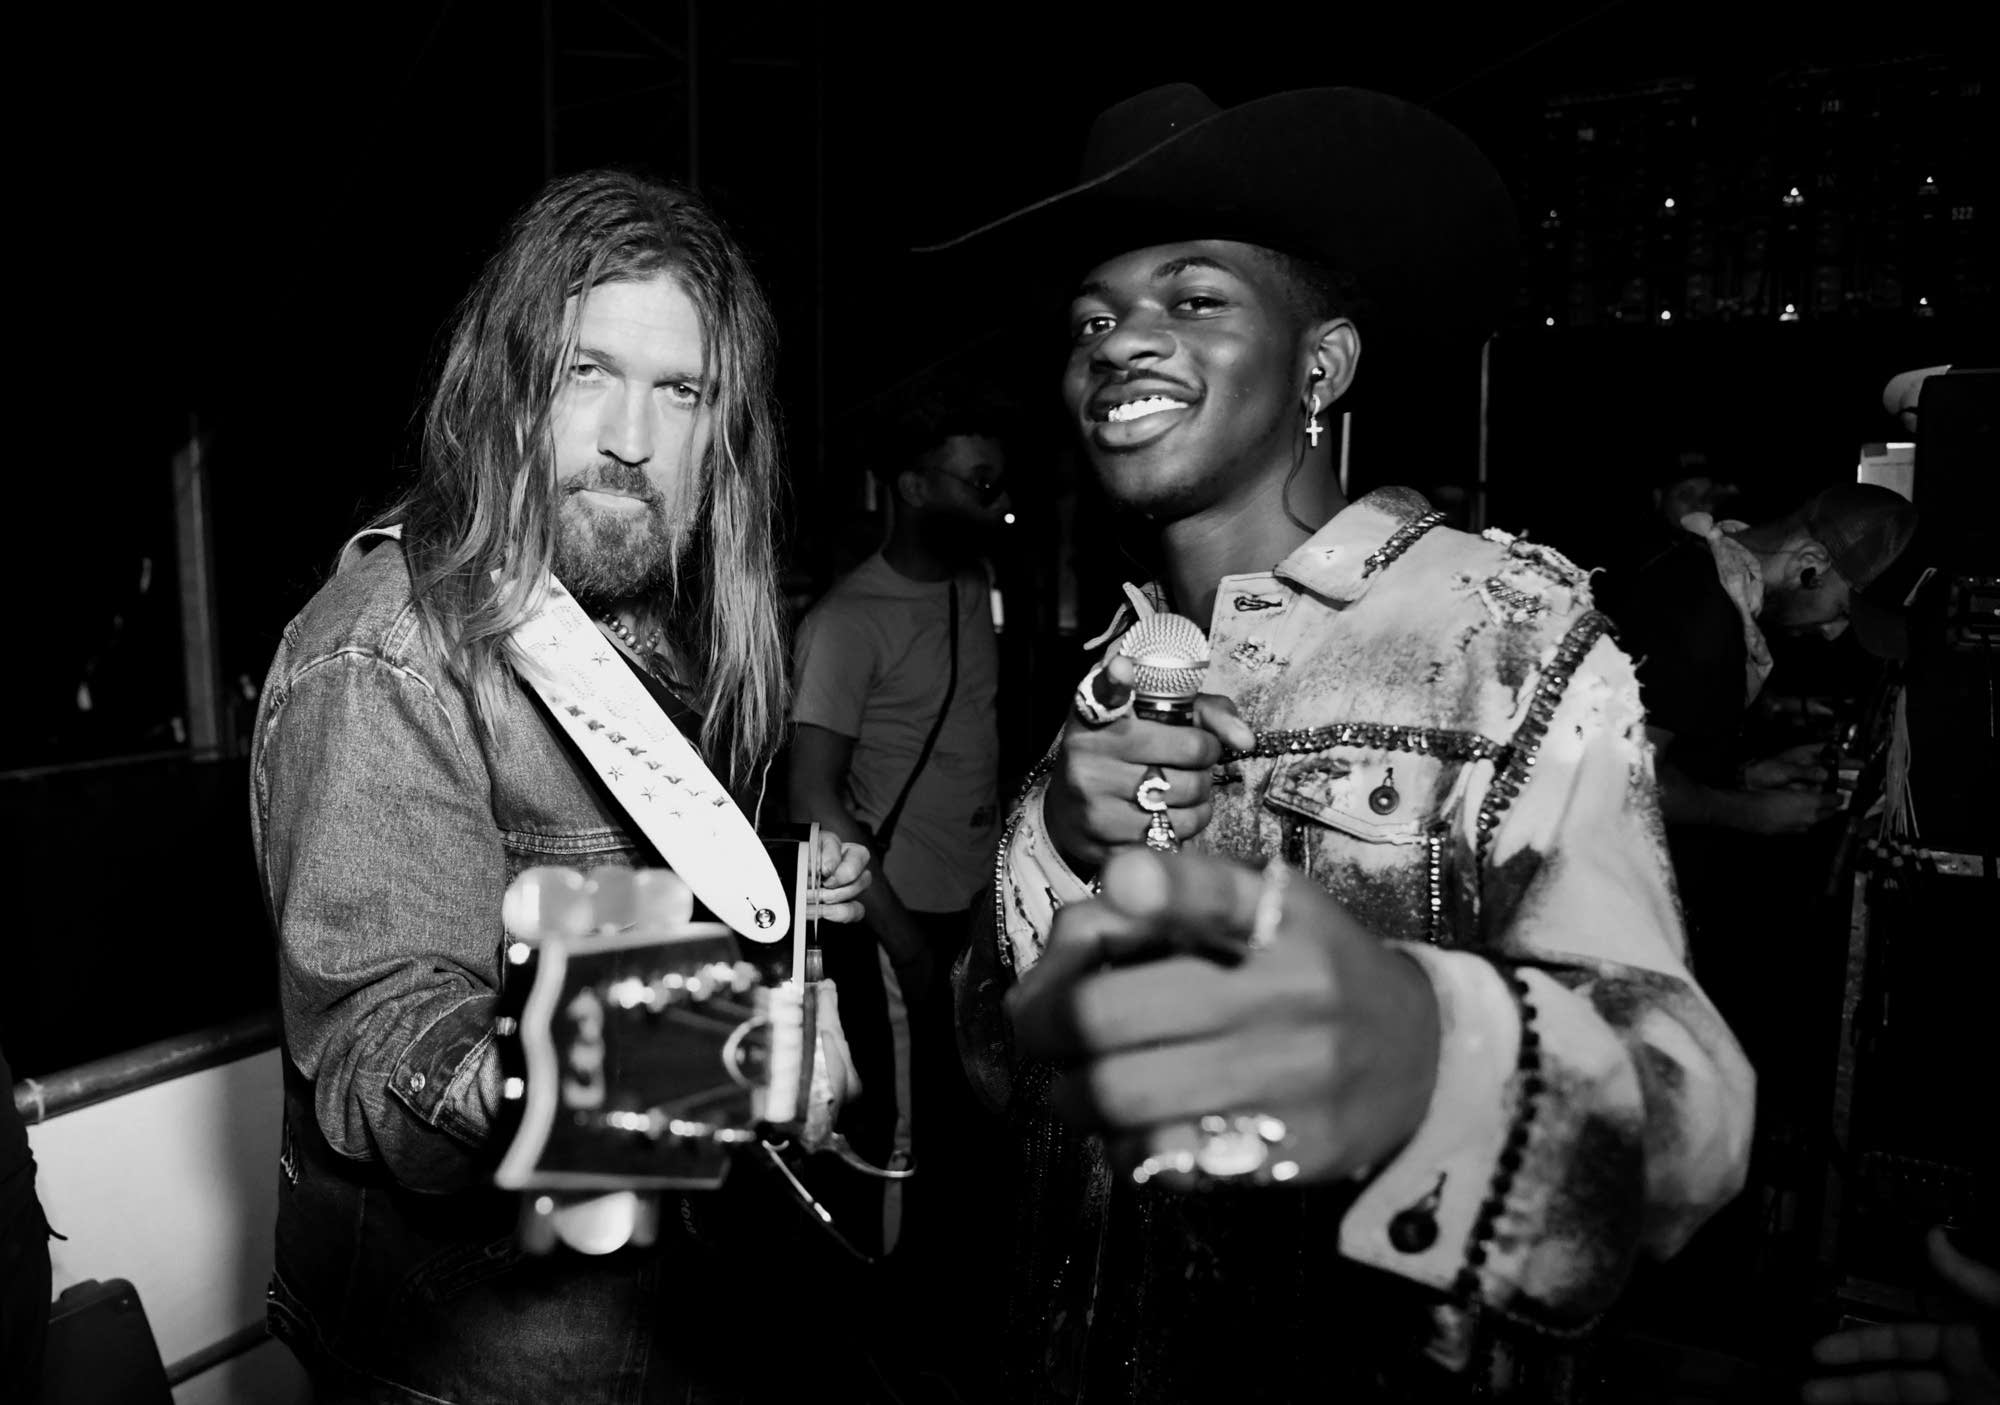 Billy Ray Cyrus and Lil Nas X at Stagecoach Festival